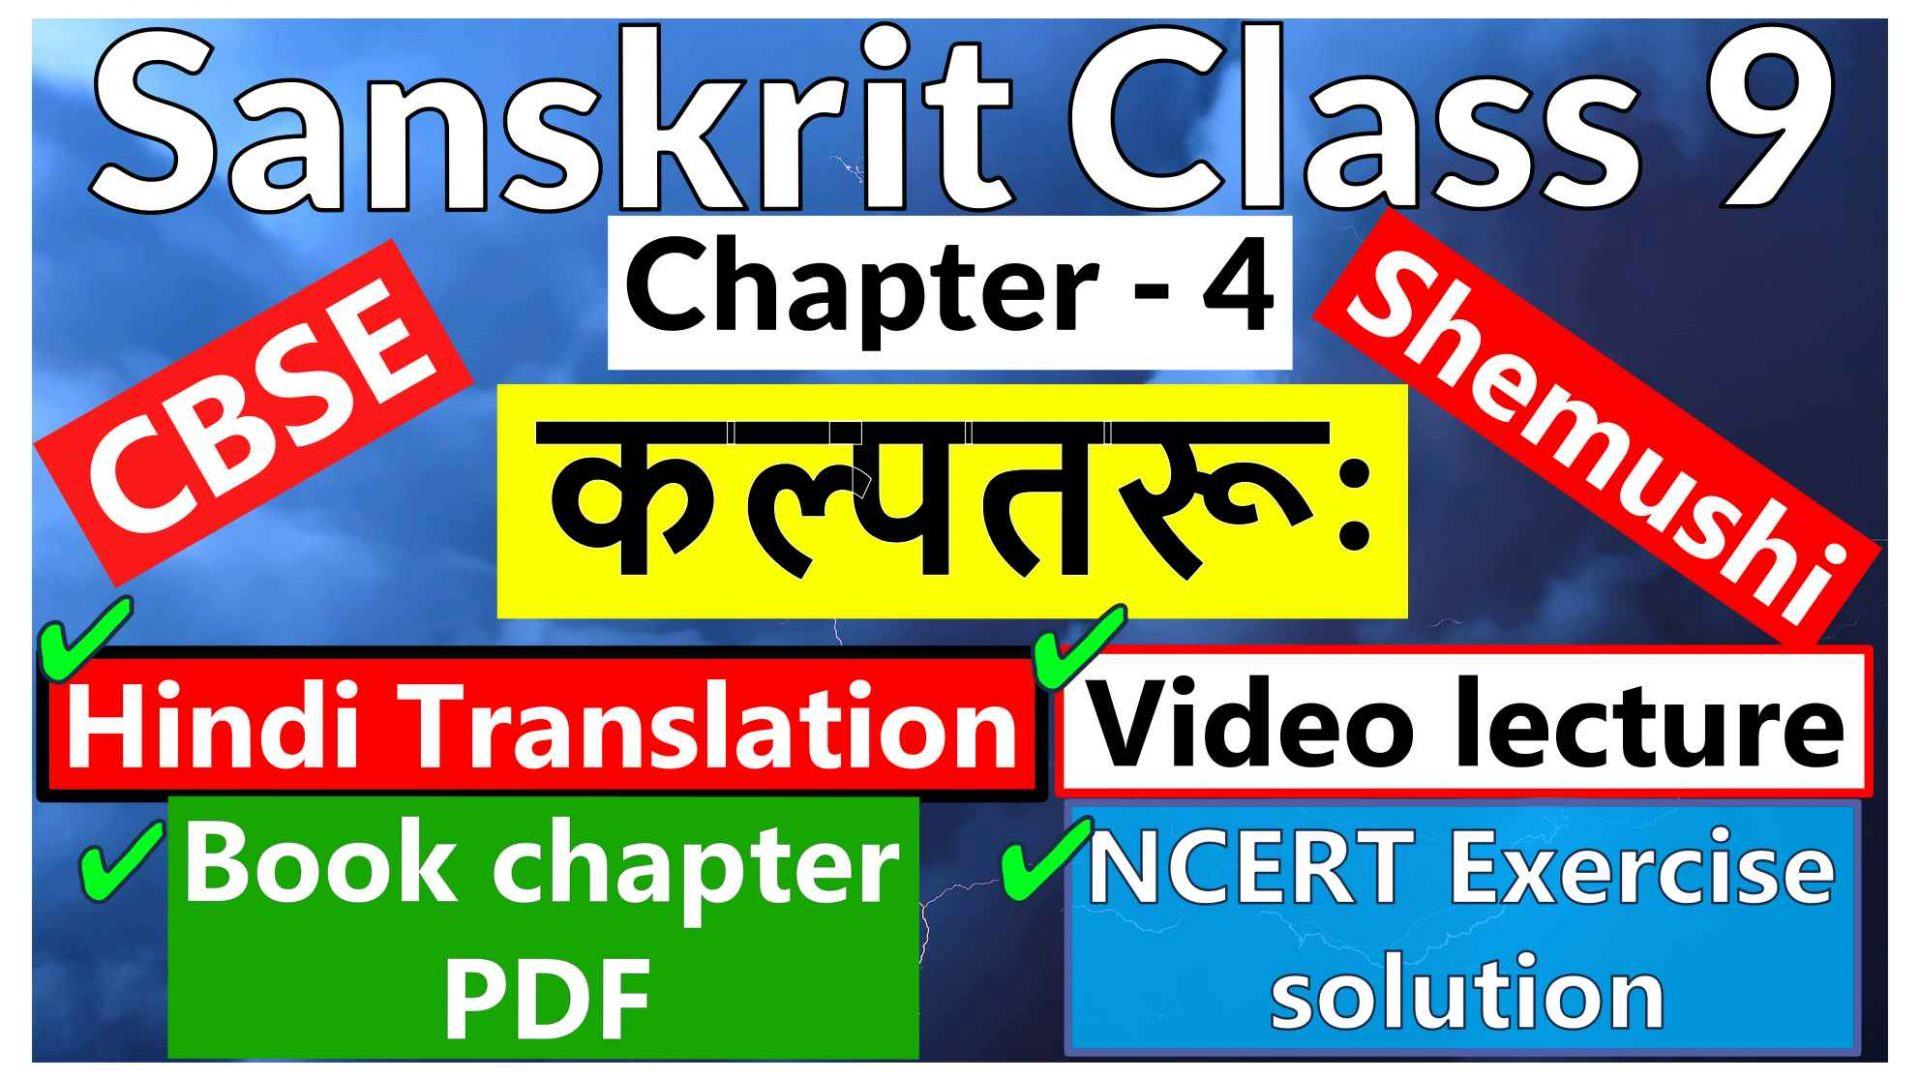 Sanskrit Class 9- Chapter 4 -कल्पतरूः- Hindi Translation, Video lecture, NCERT Exercise solution (Question-Answer), Book chapter PDF